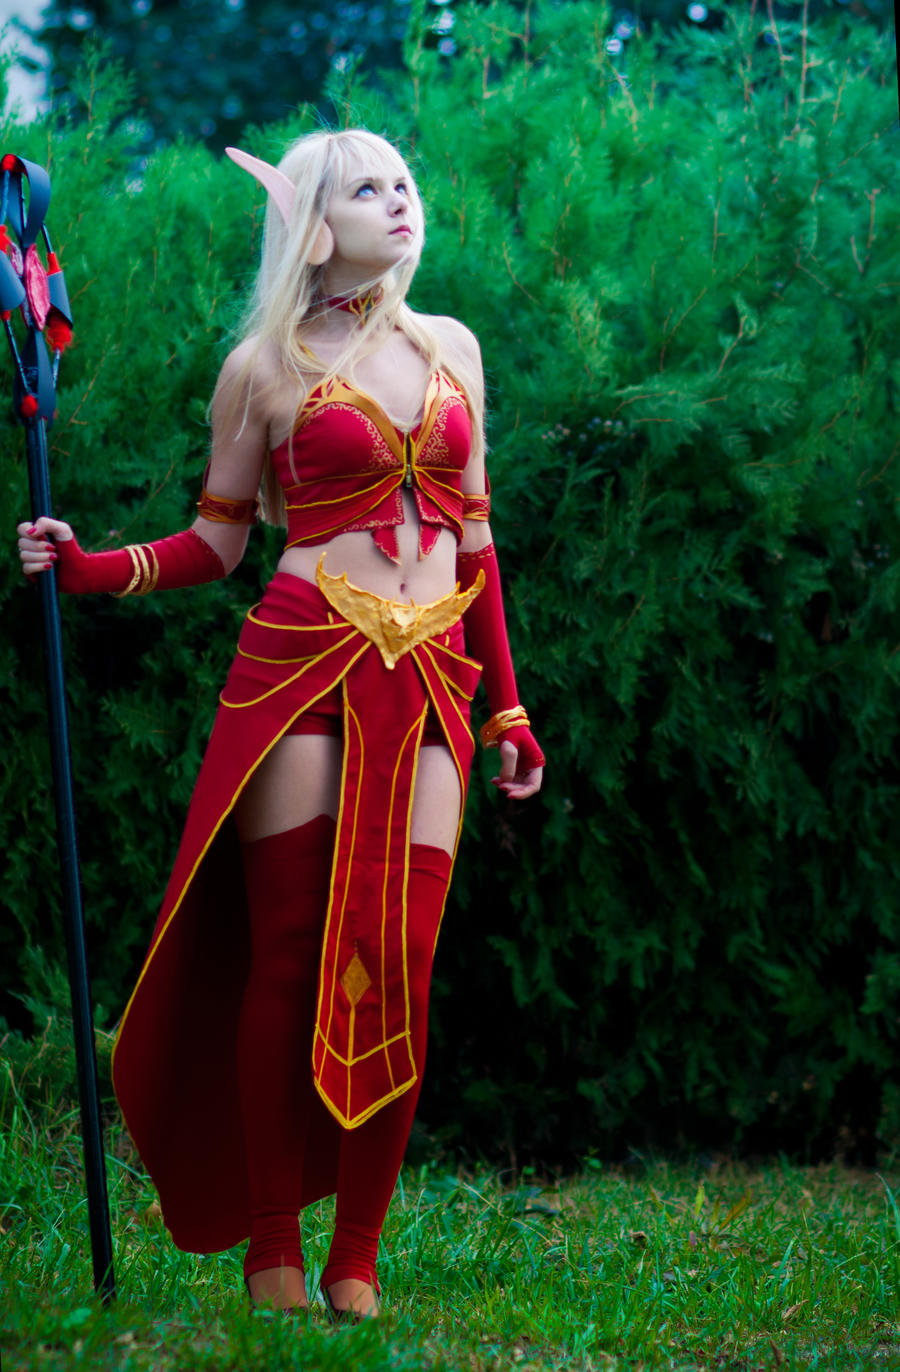 Blood elves girls fucks images